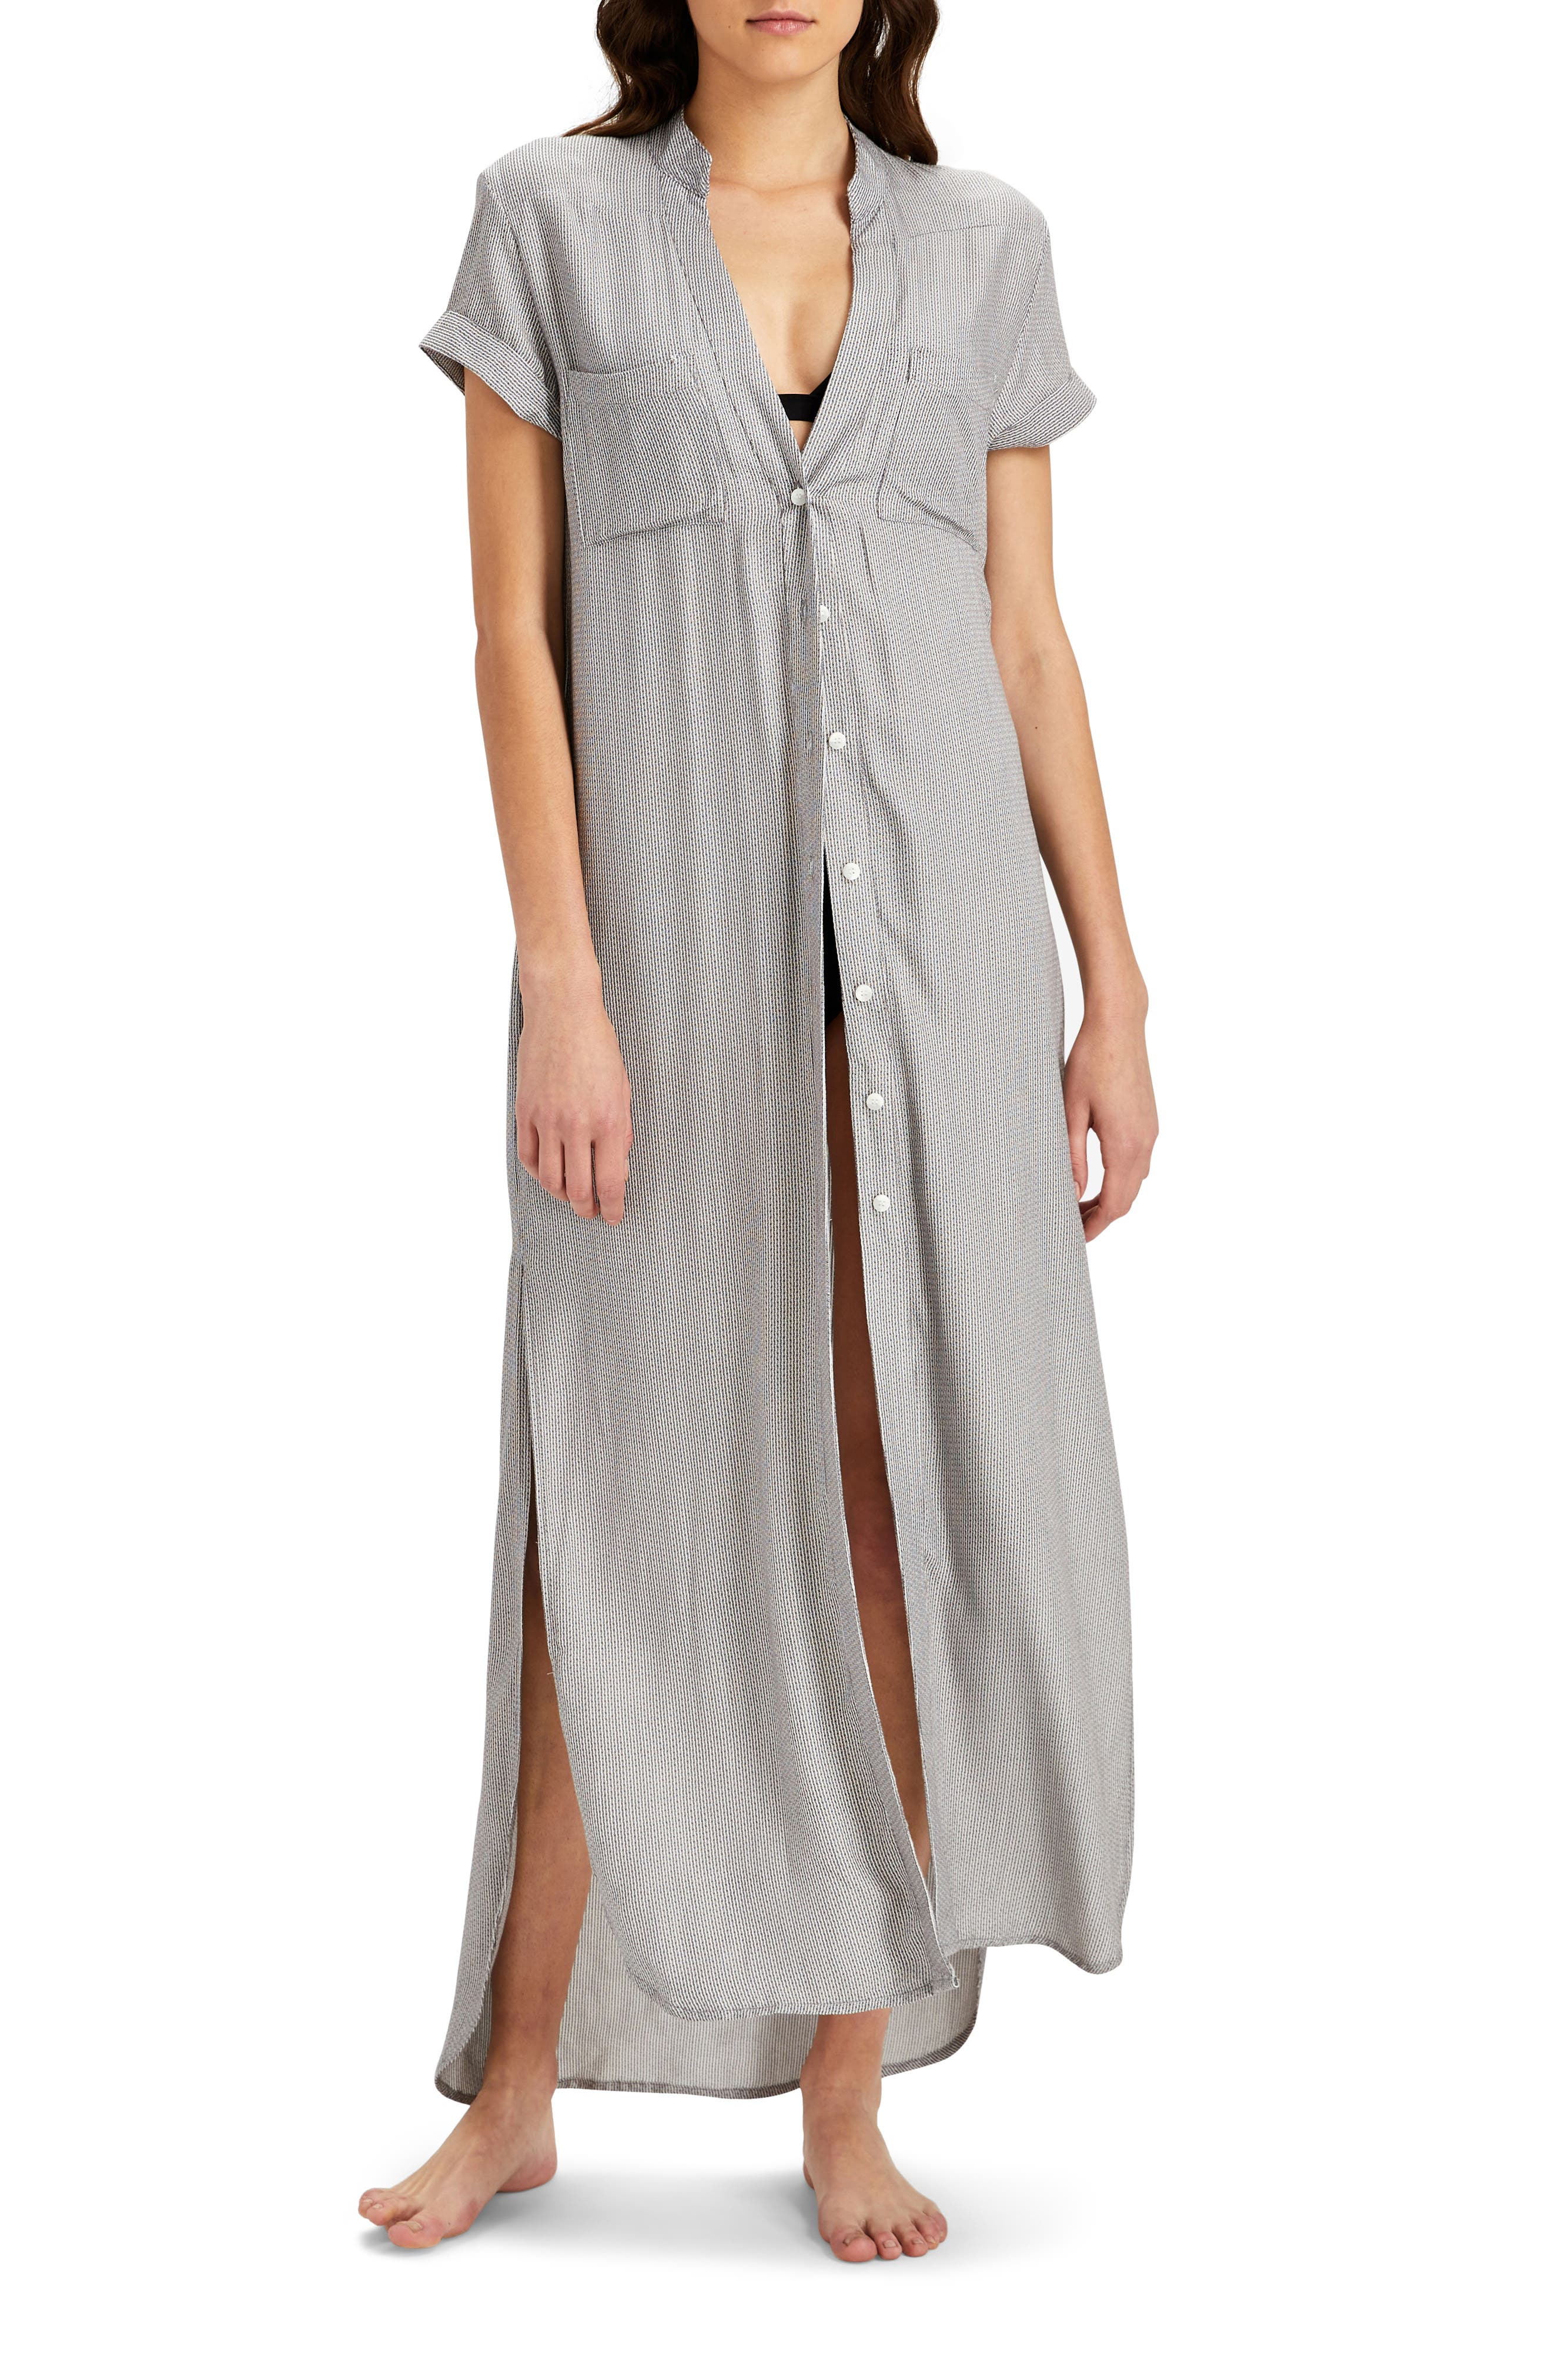 Kim Button Down Cover-Up Dress,                         Main,                         color, Charcoal/ White